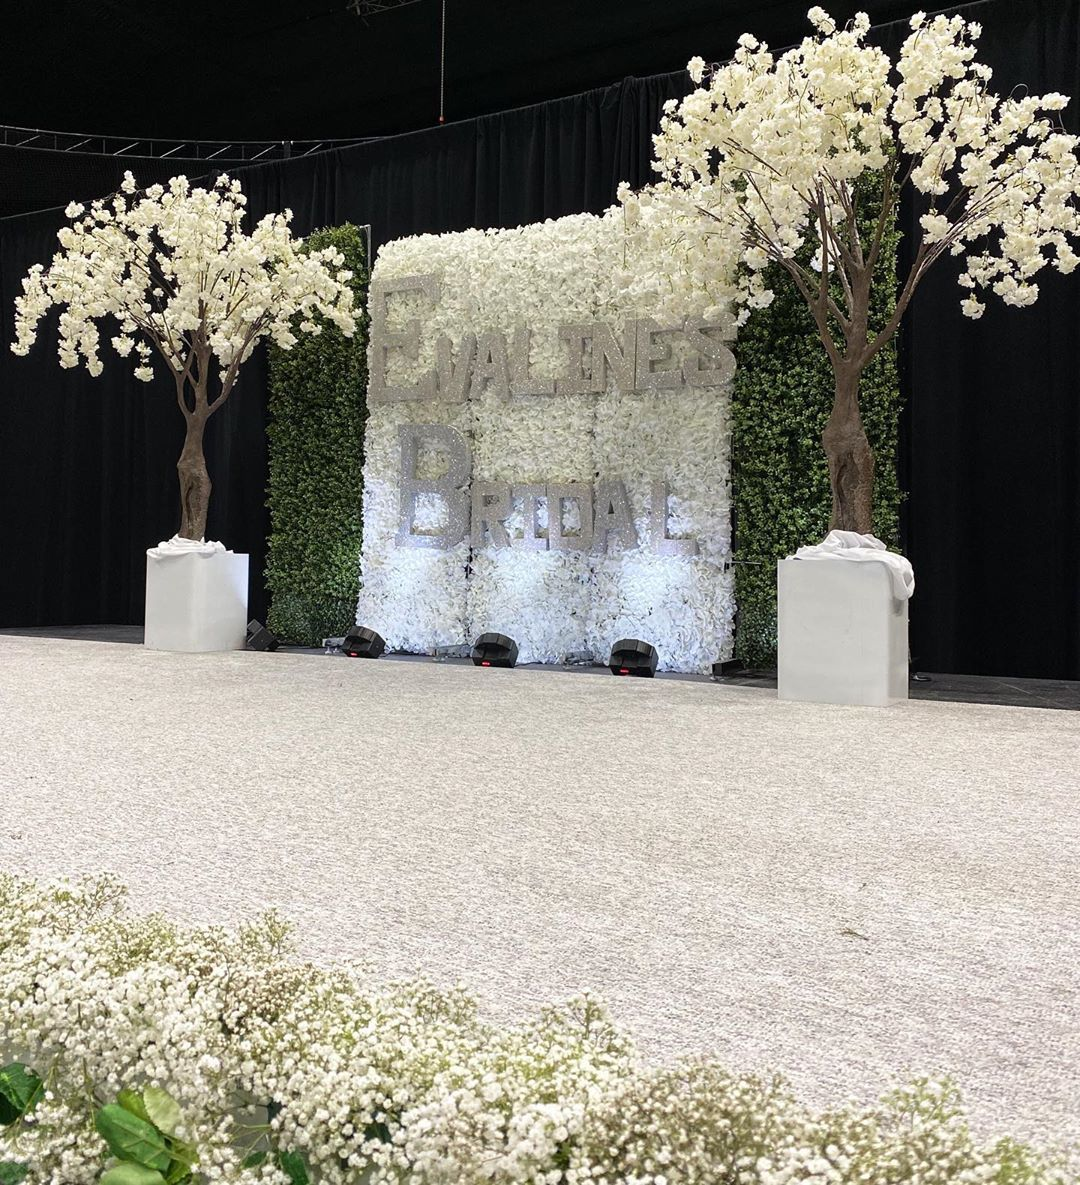 Flower Blossom Tree Arch Rental Wedding Decor Hire Cape Town By Muse Concepts White Blossom Tree Blossom Tree Wedding Arch Decoration Wedding